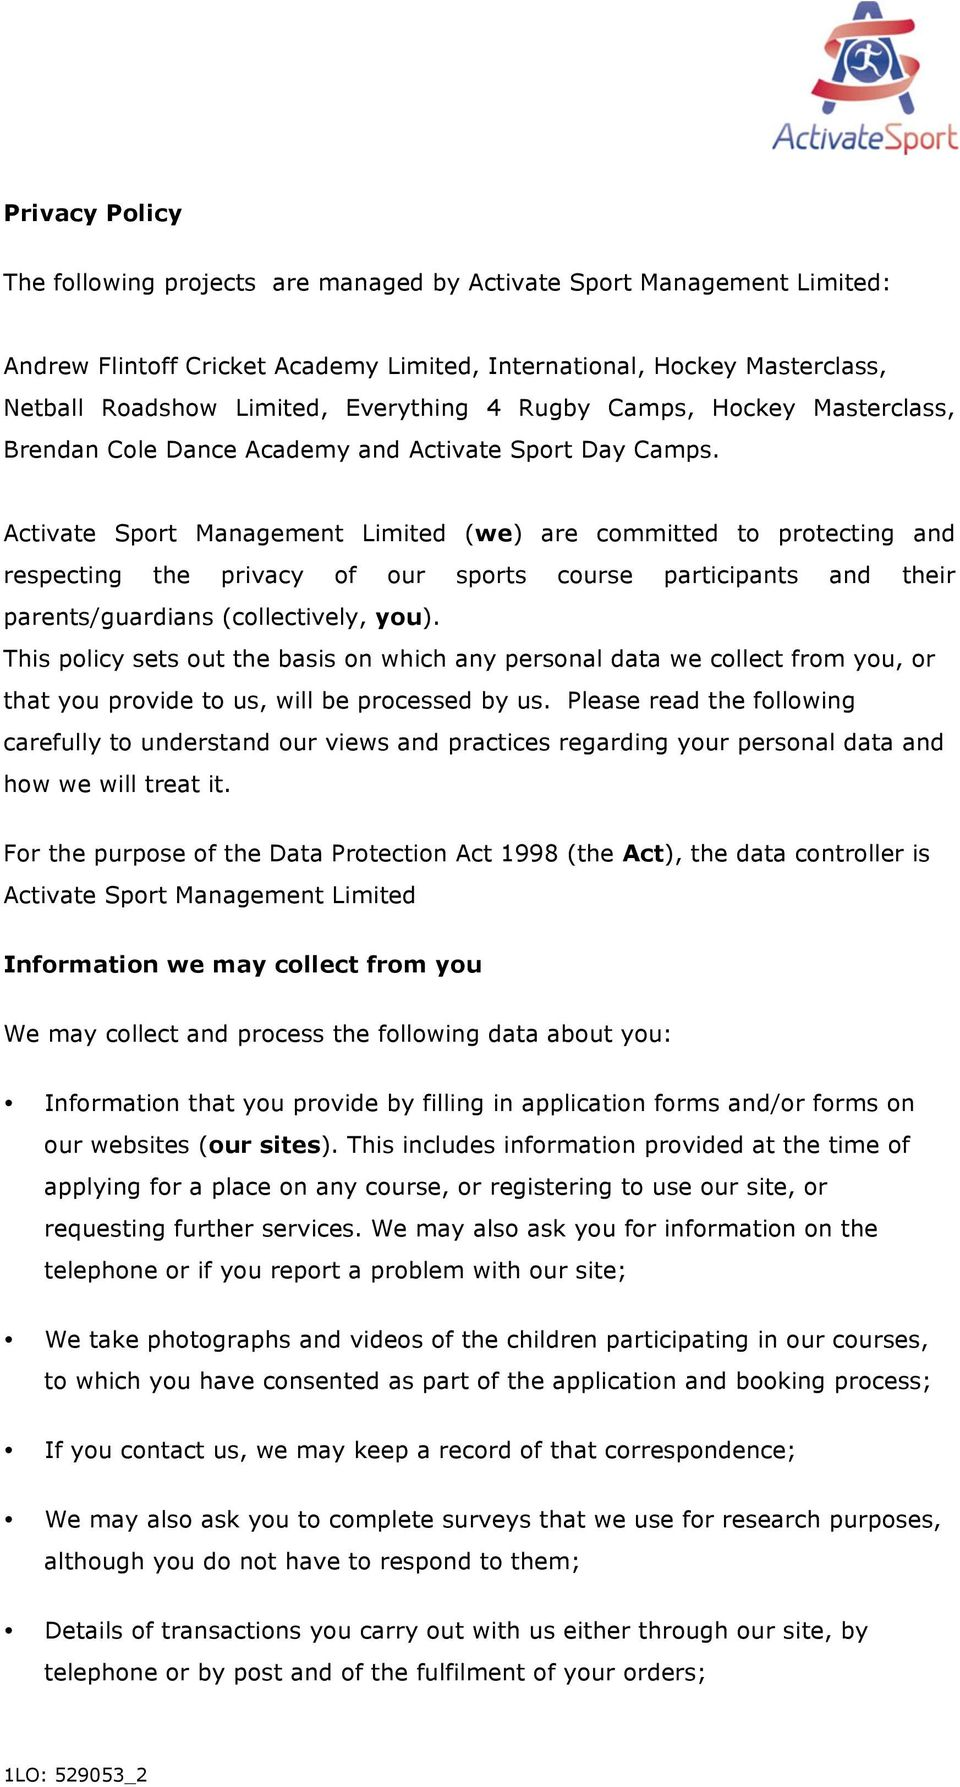 Activate Sport Management Limited (we) are committed to protecting and respecting the privacy of our sports course participants and their parents/guardians (collectively, you).